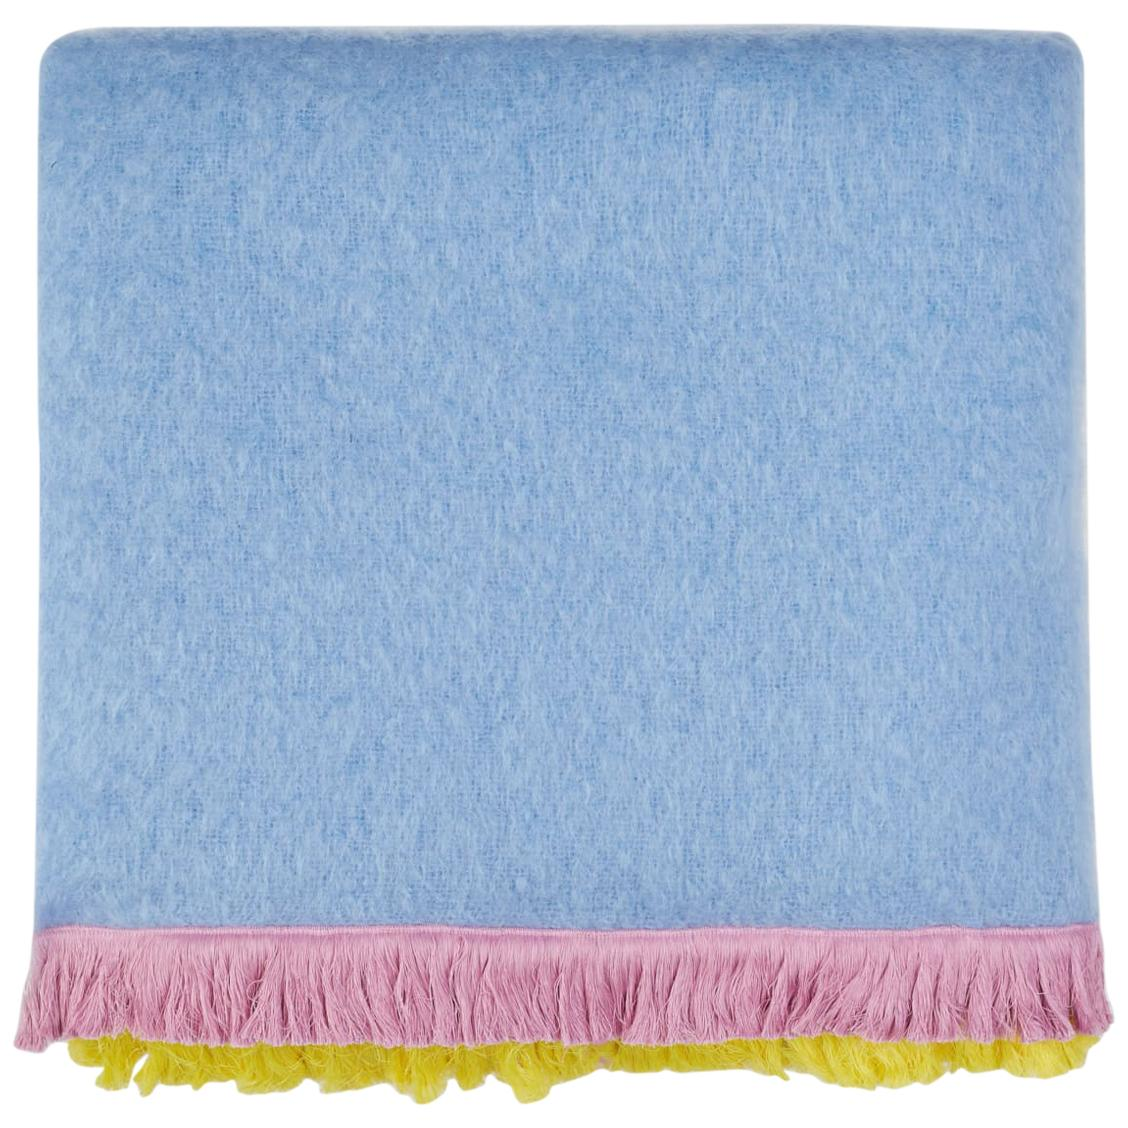 Pompallier, Hand Embroidered sweet blue Throw Blanket